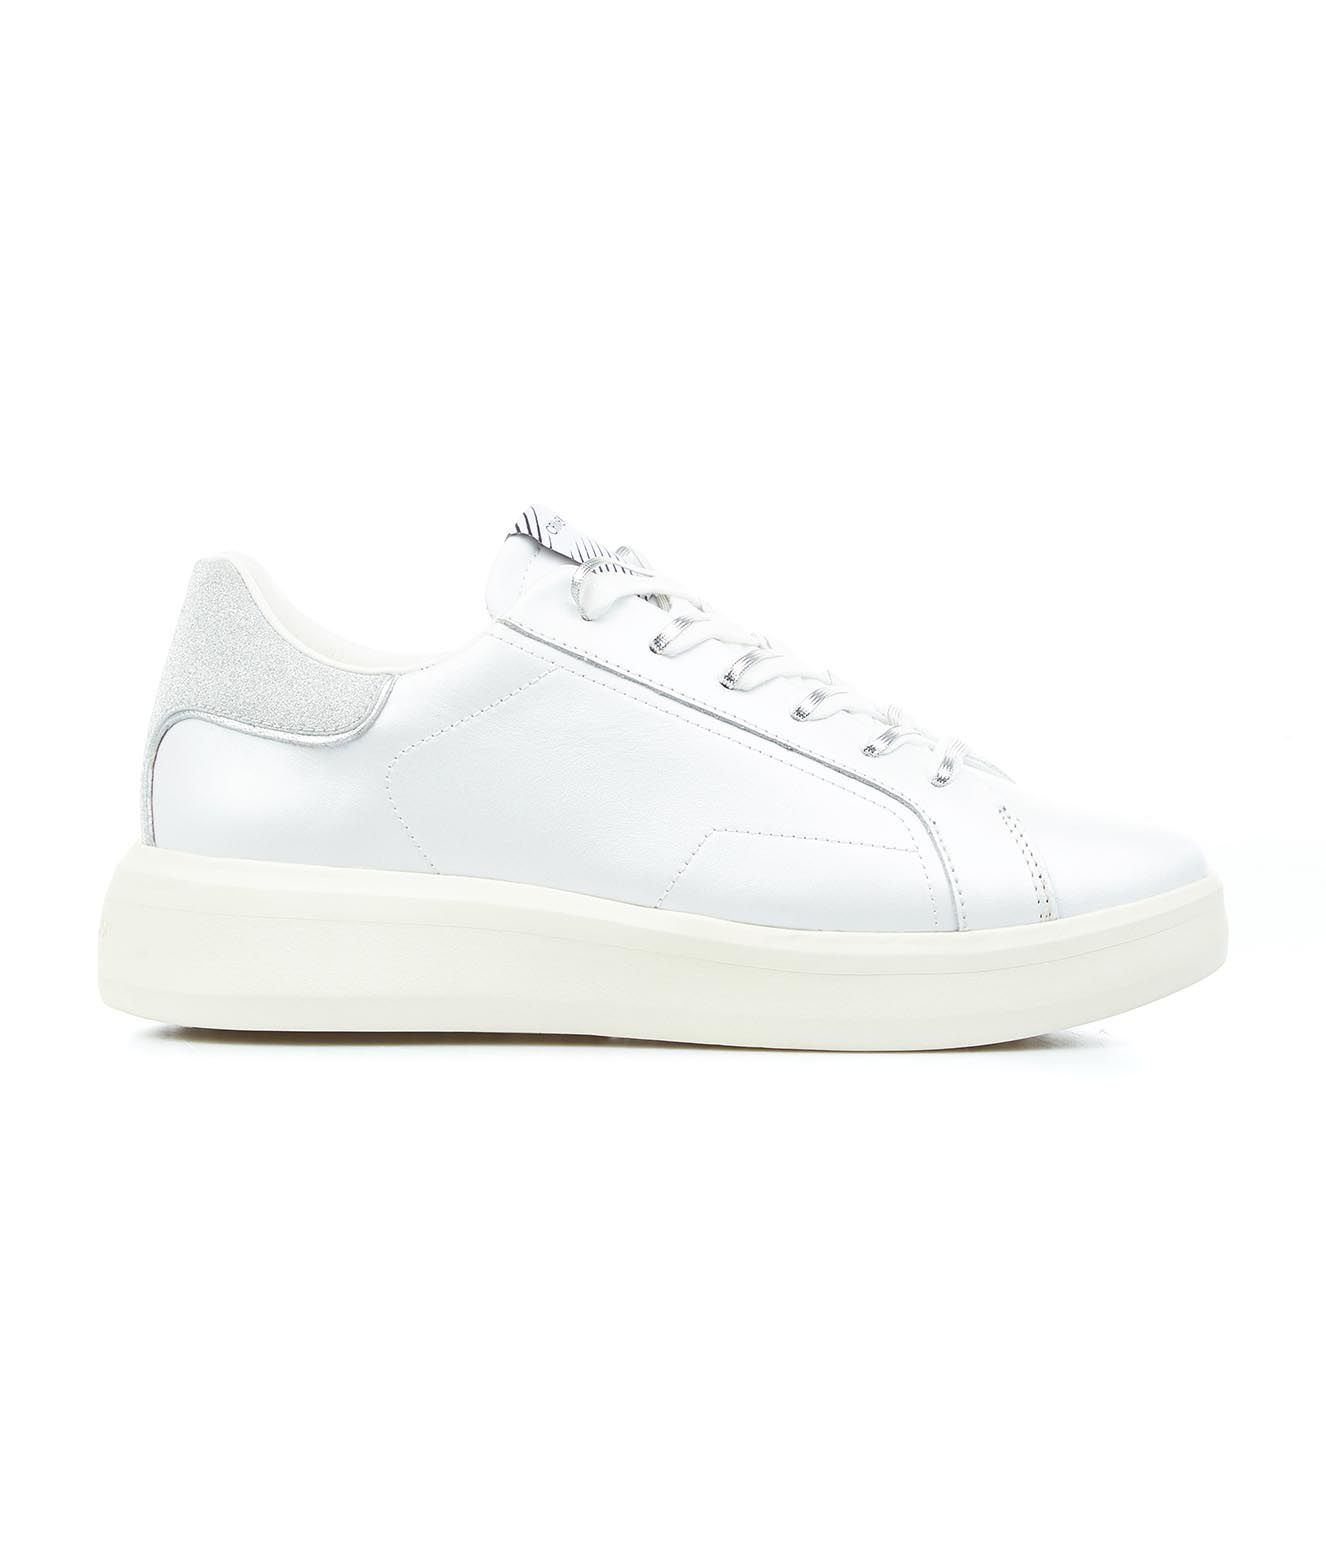 Crime London Leathers CRIME LONDON WOMEN'S 25306PP3B11WHITE WHITE OTHER MATERIALS SNEAKERS